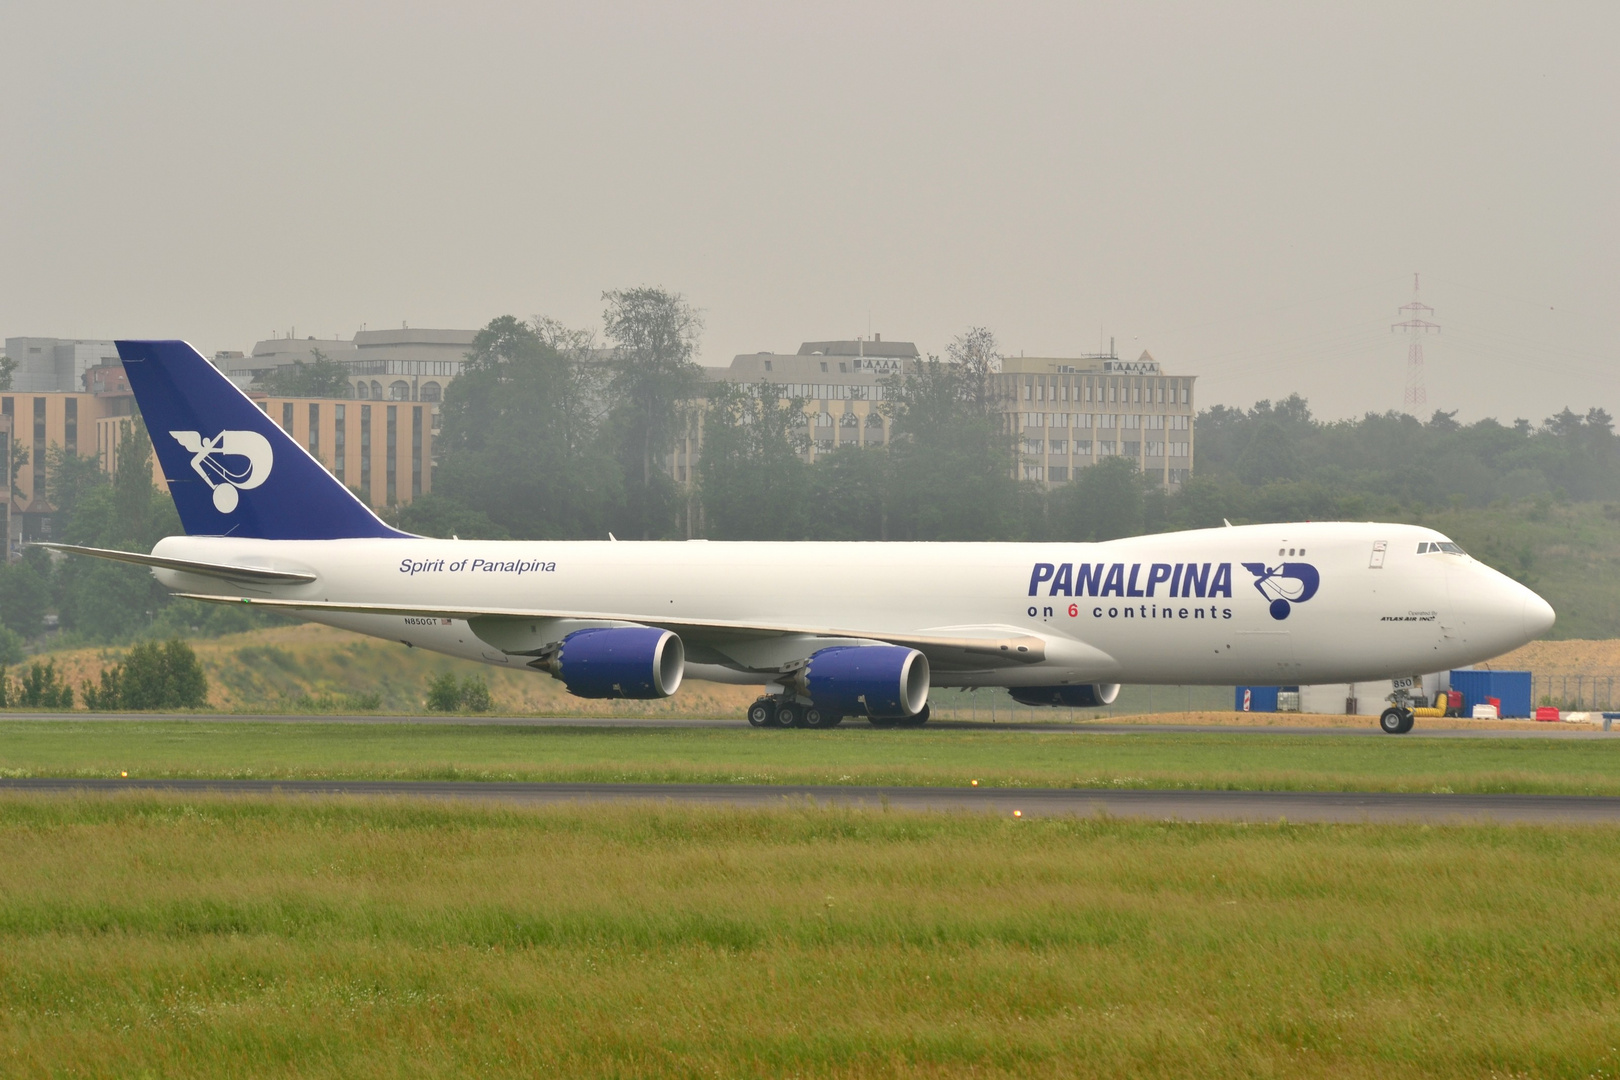 The first rollout of the Panalpin jumbo 747-8 in LUX